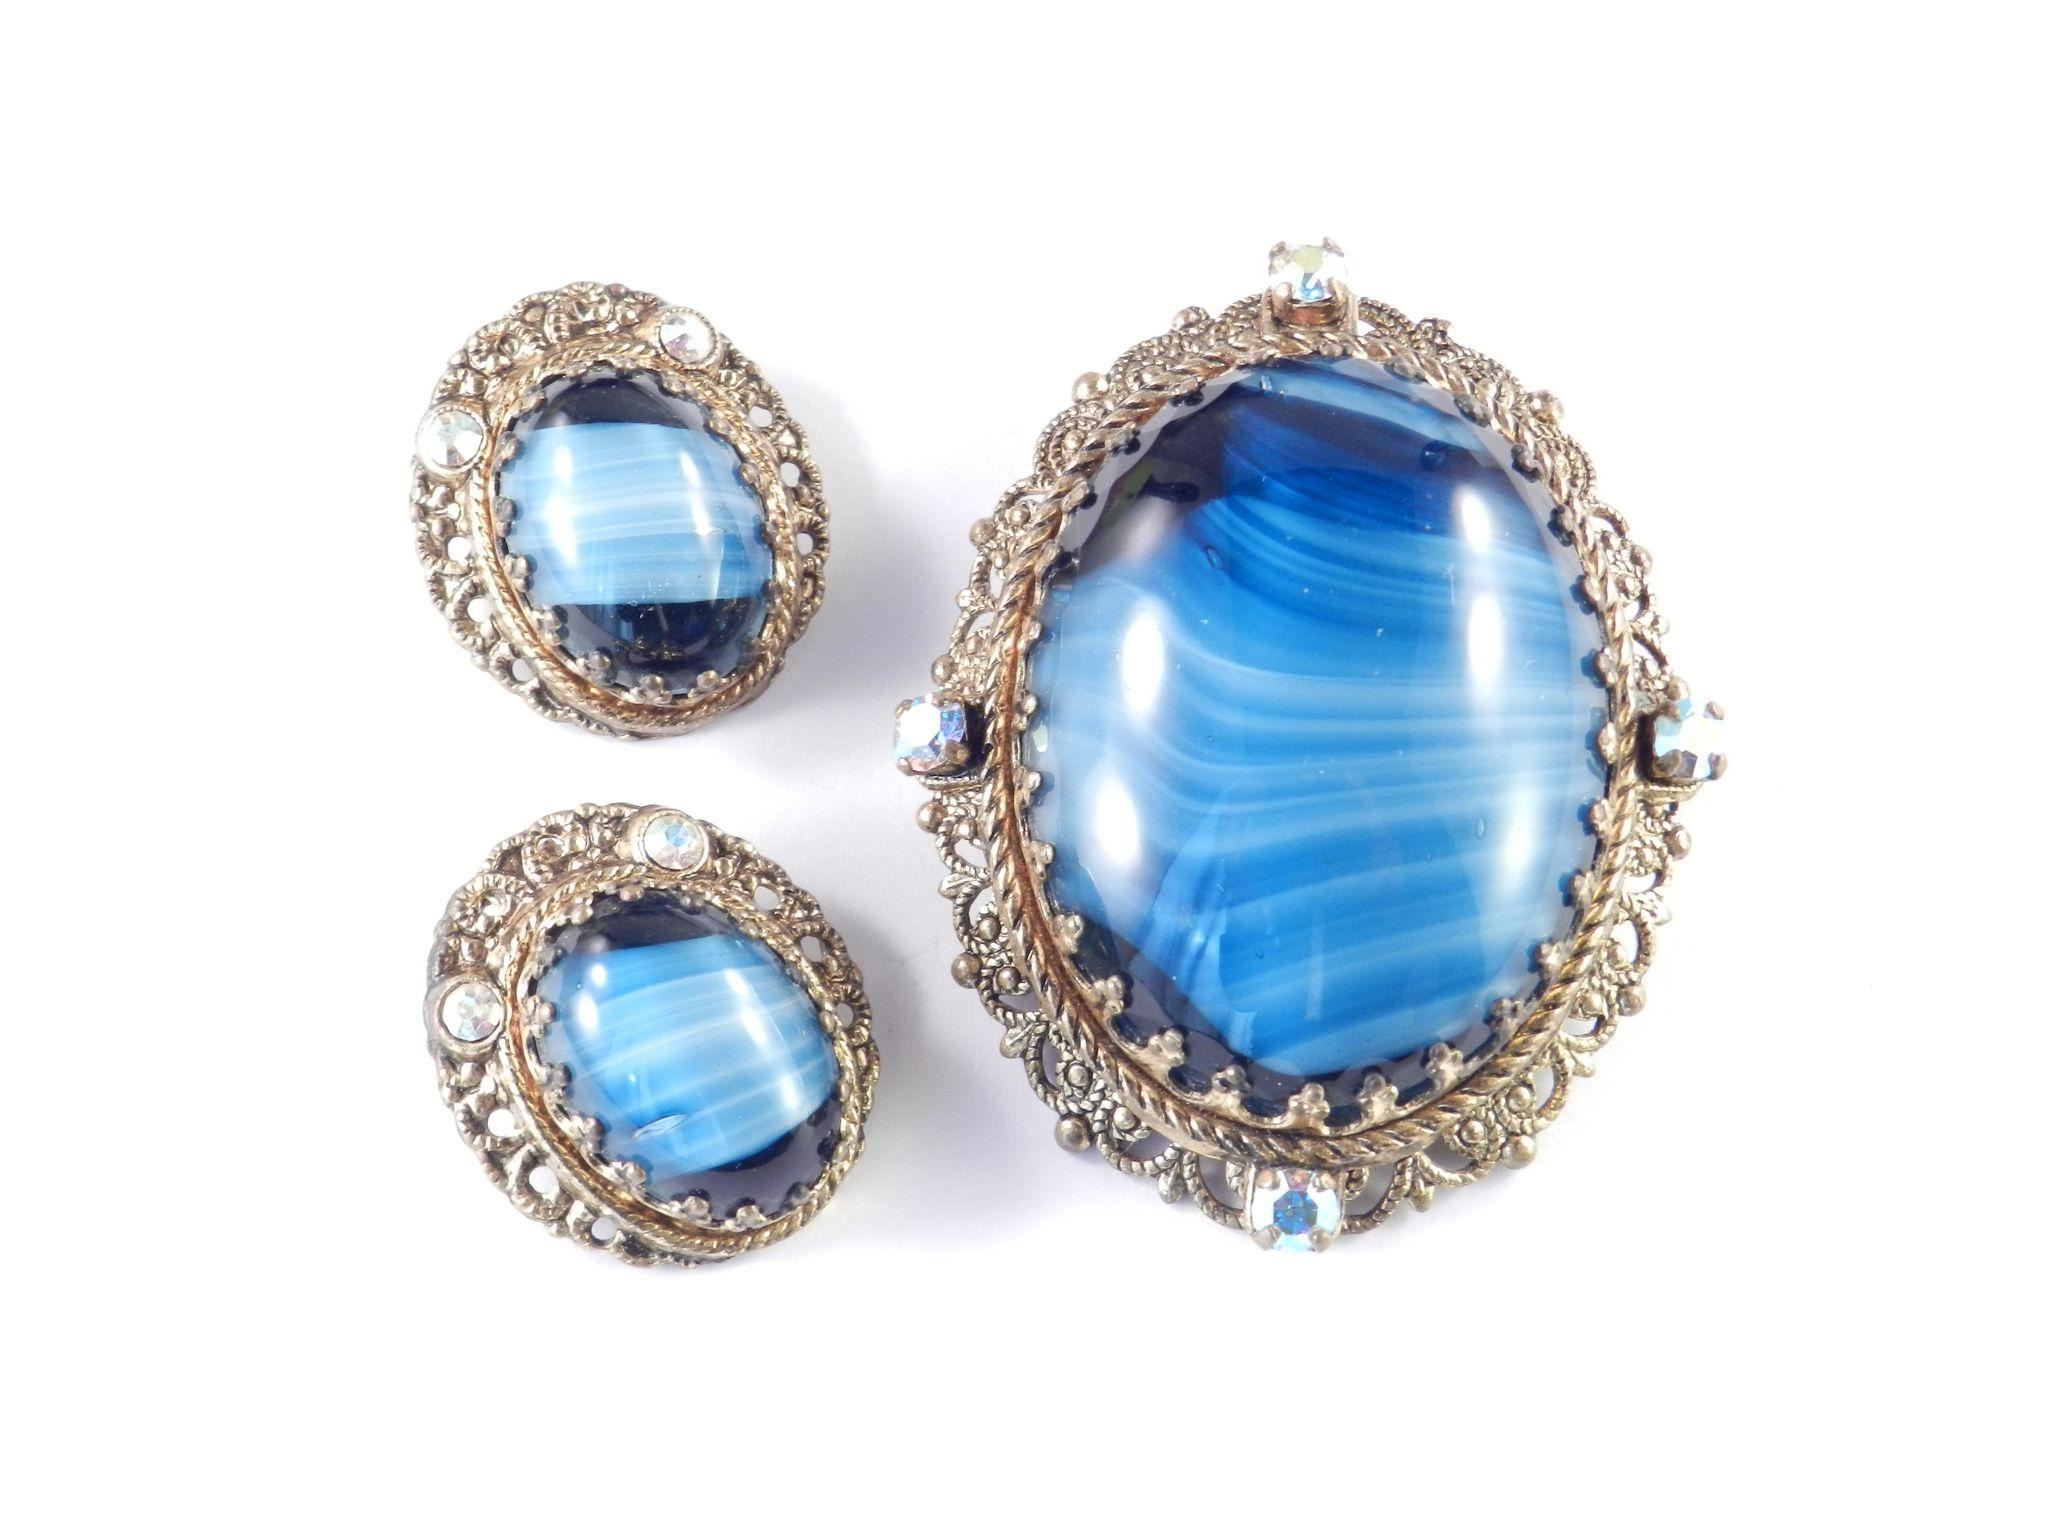 West Germany Blue Porphyry Glass Cabochon & Rhinestone Brooch Pin Earrings Set